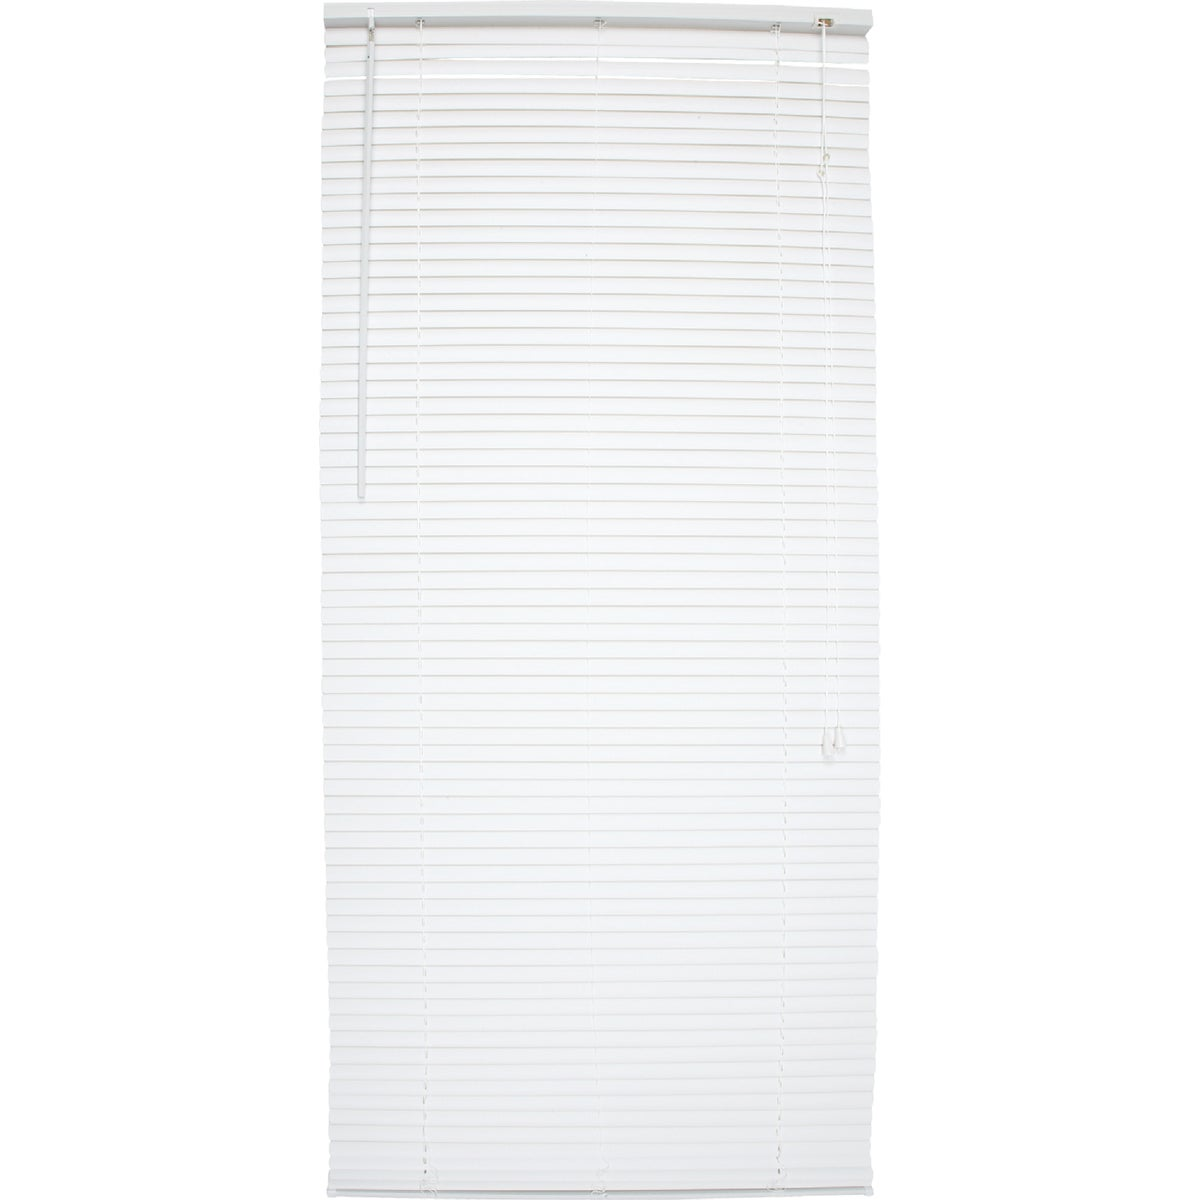 47X72 WHITE MINI BLIND - 615944 by Lotus Wind Incom